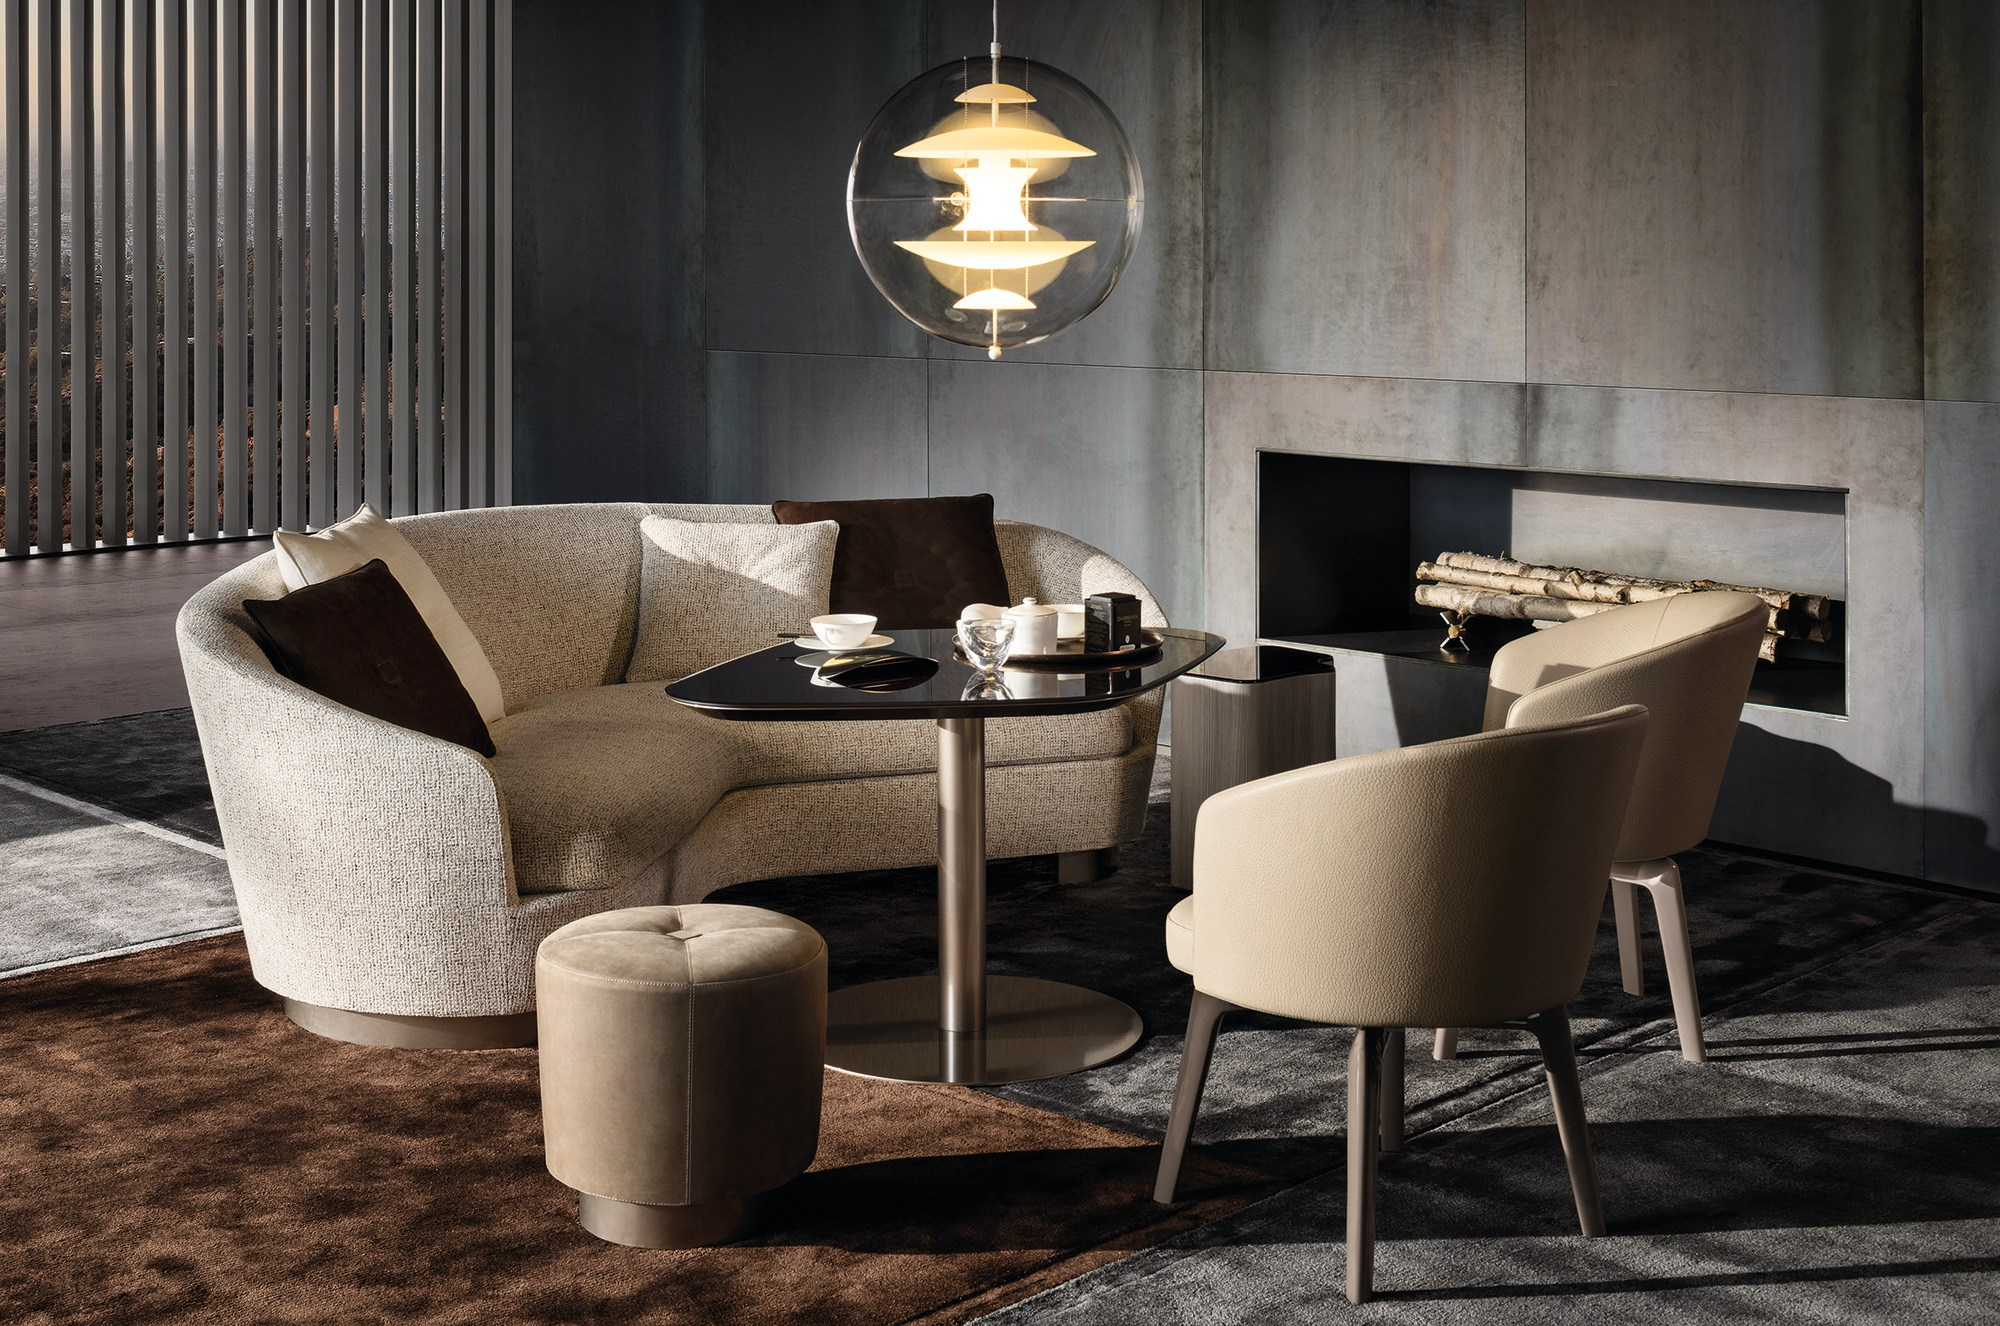 Jacques Curved Sofa Jacques Collection By Minotti